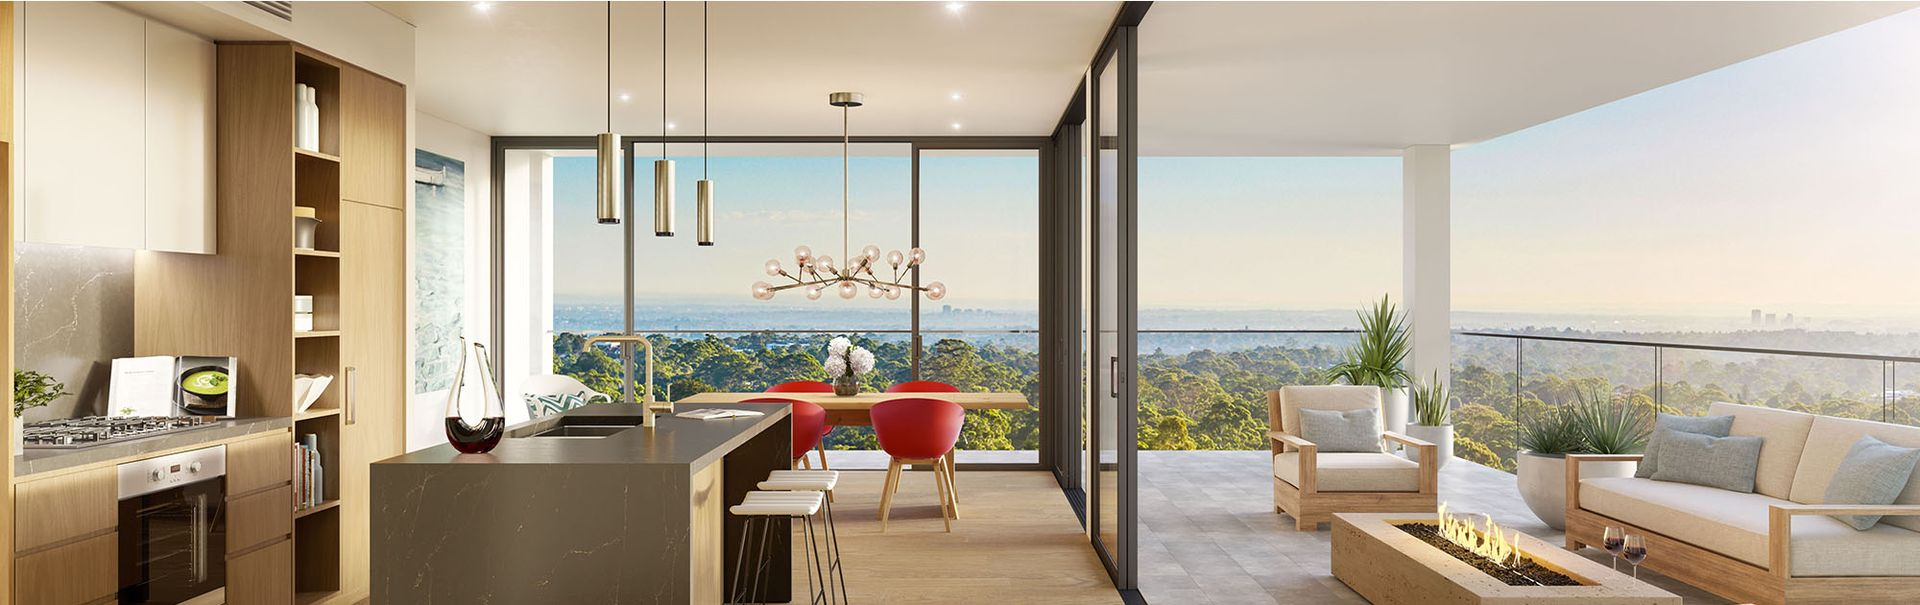 A301/2 Oliver Road, Chatswood NSW 2067, Image 2